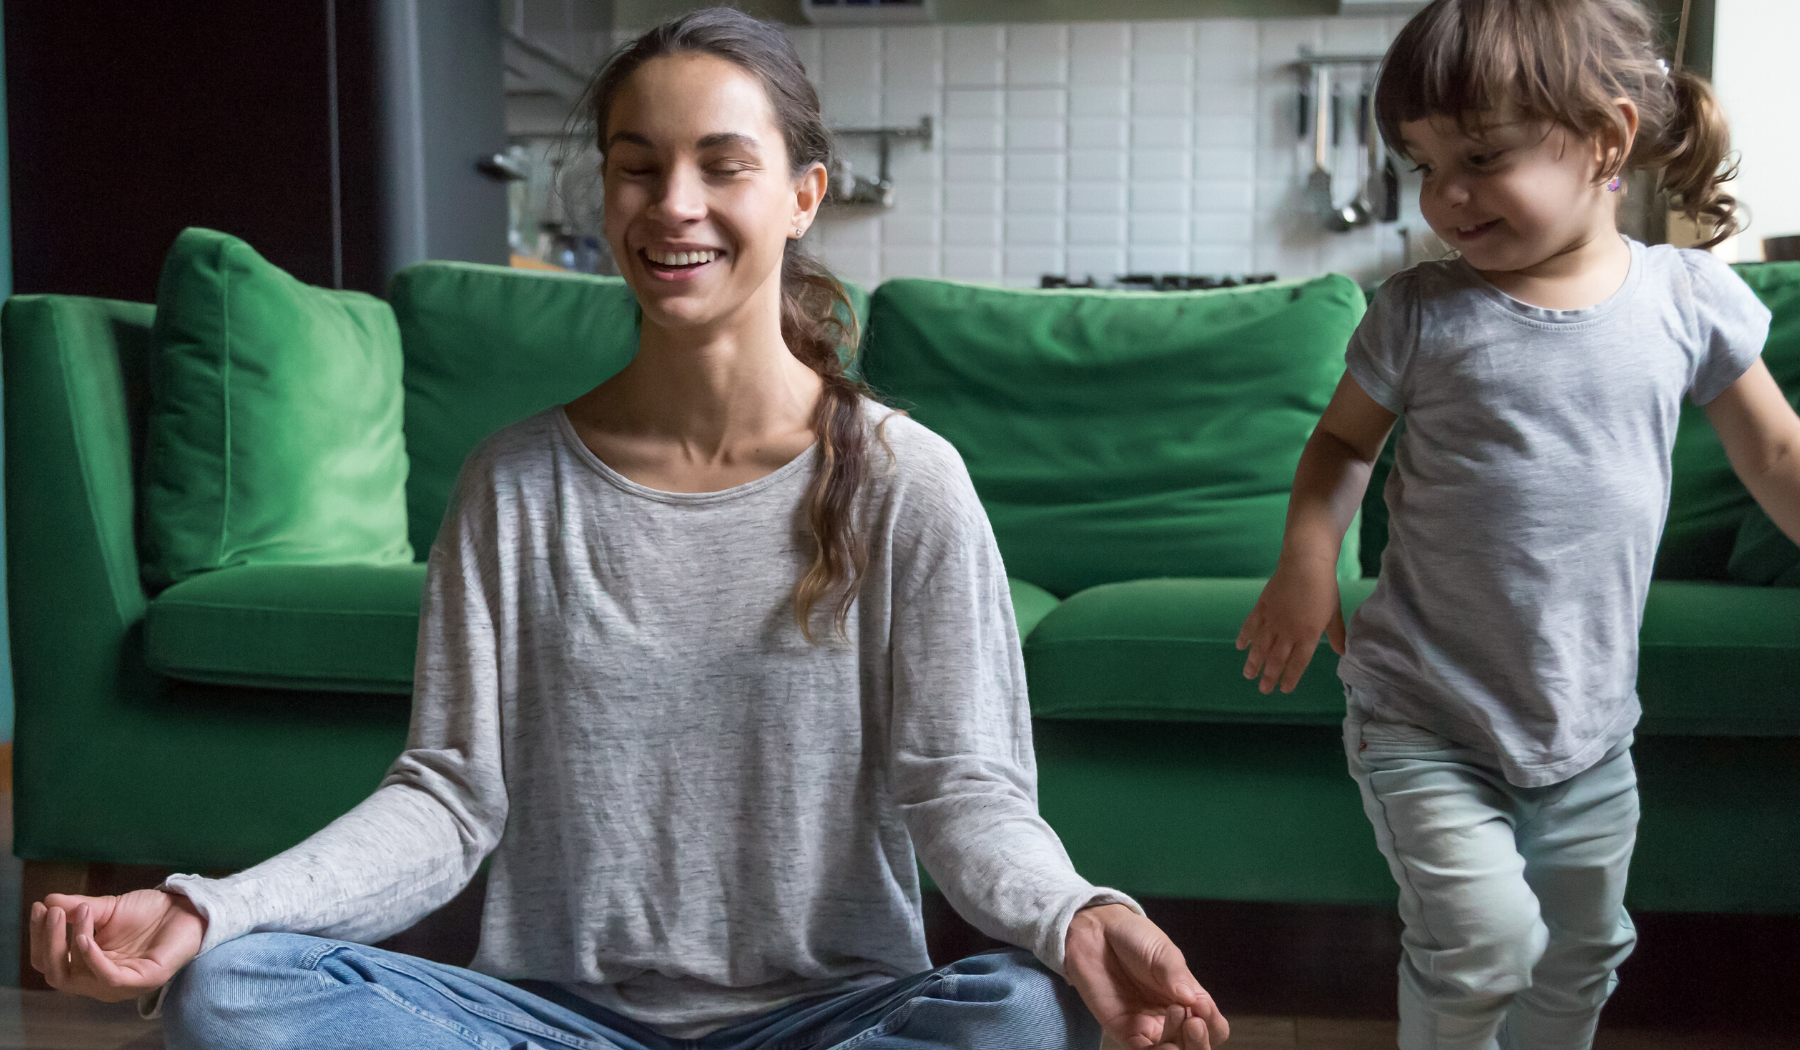 mother practicing meditation with toddler